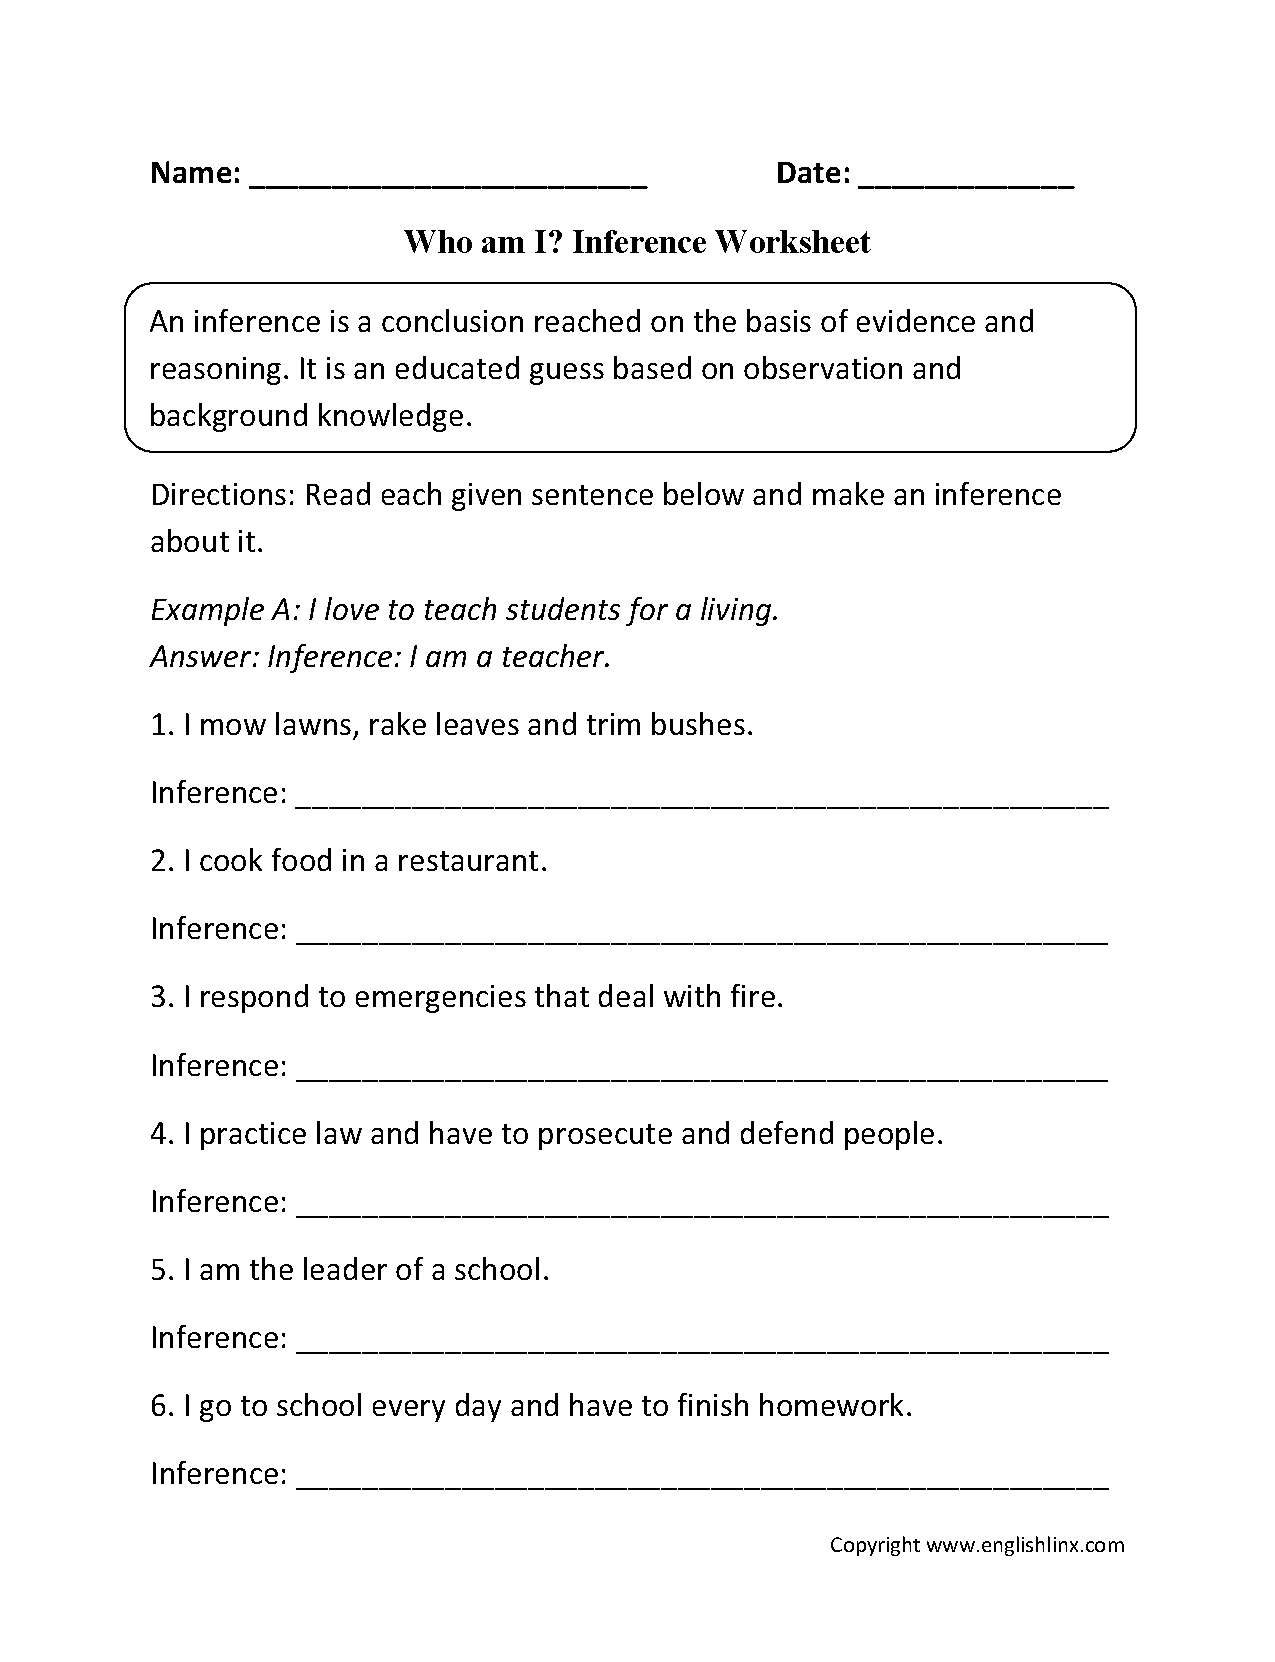 Reading Worksheets Inference Worksheets